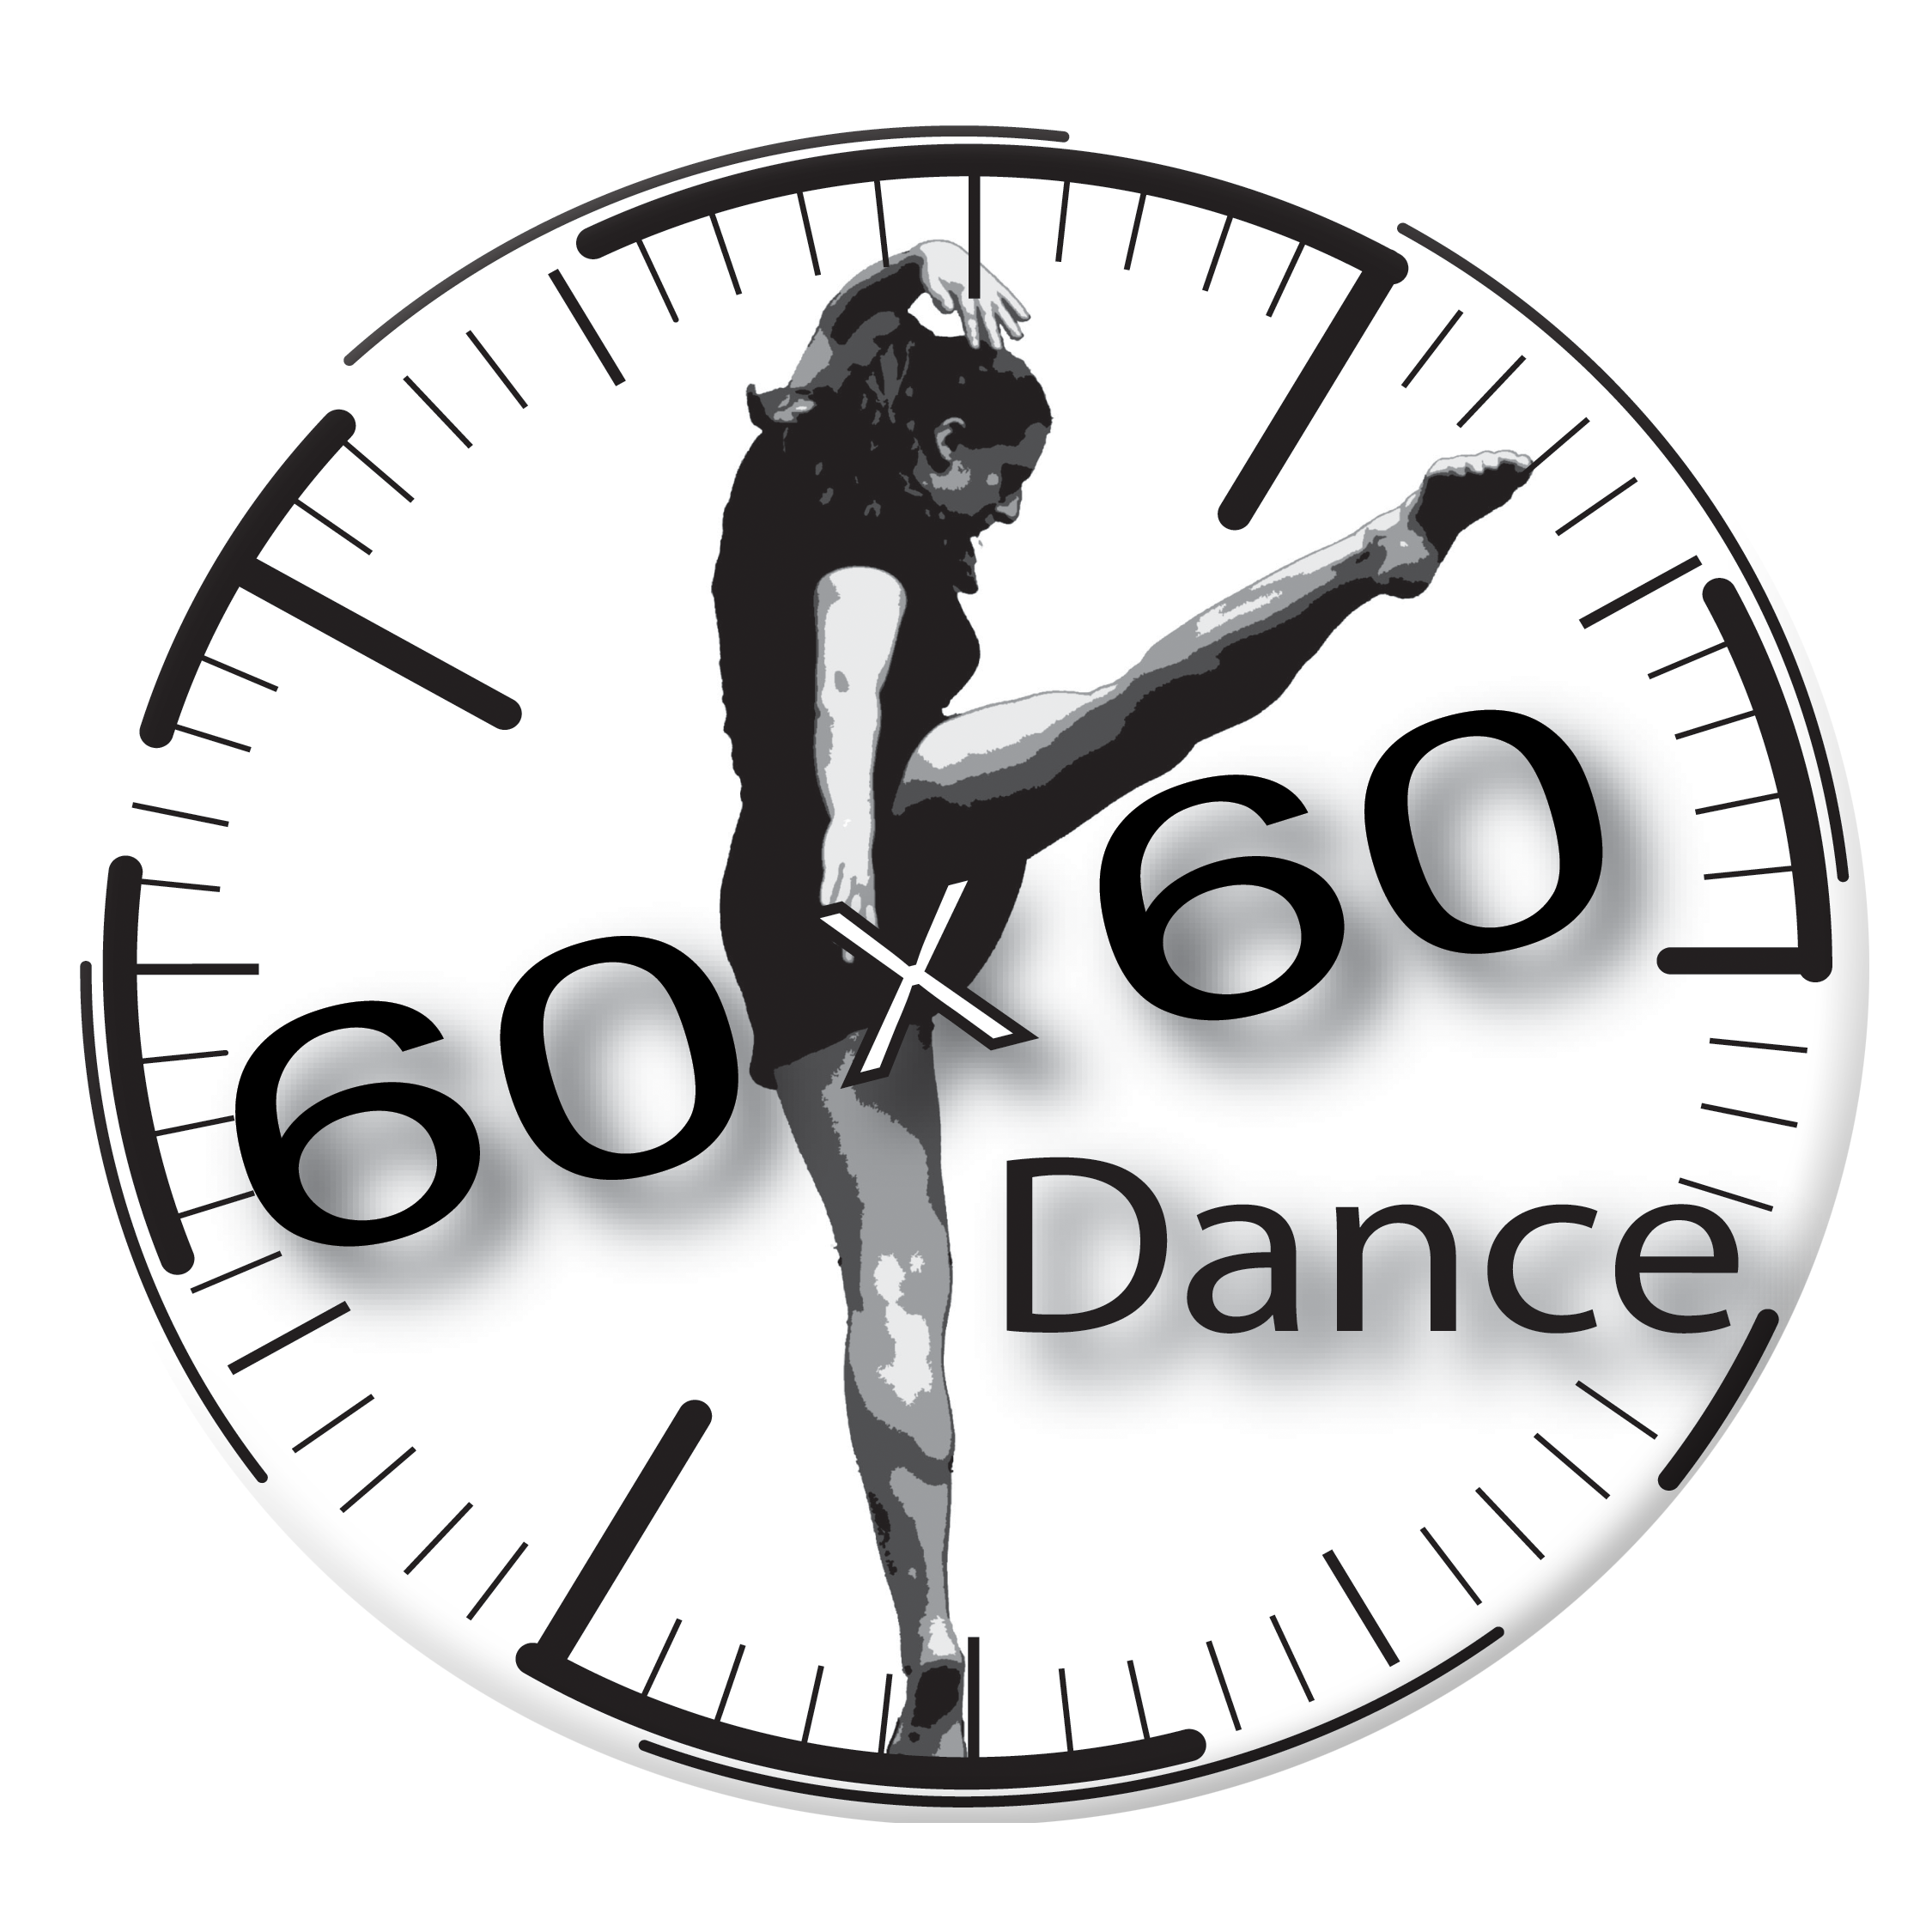 60x60 Dance